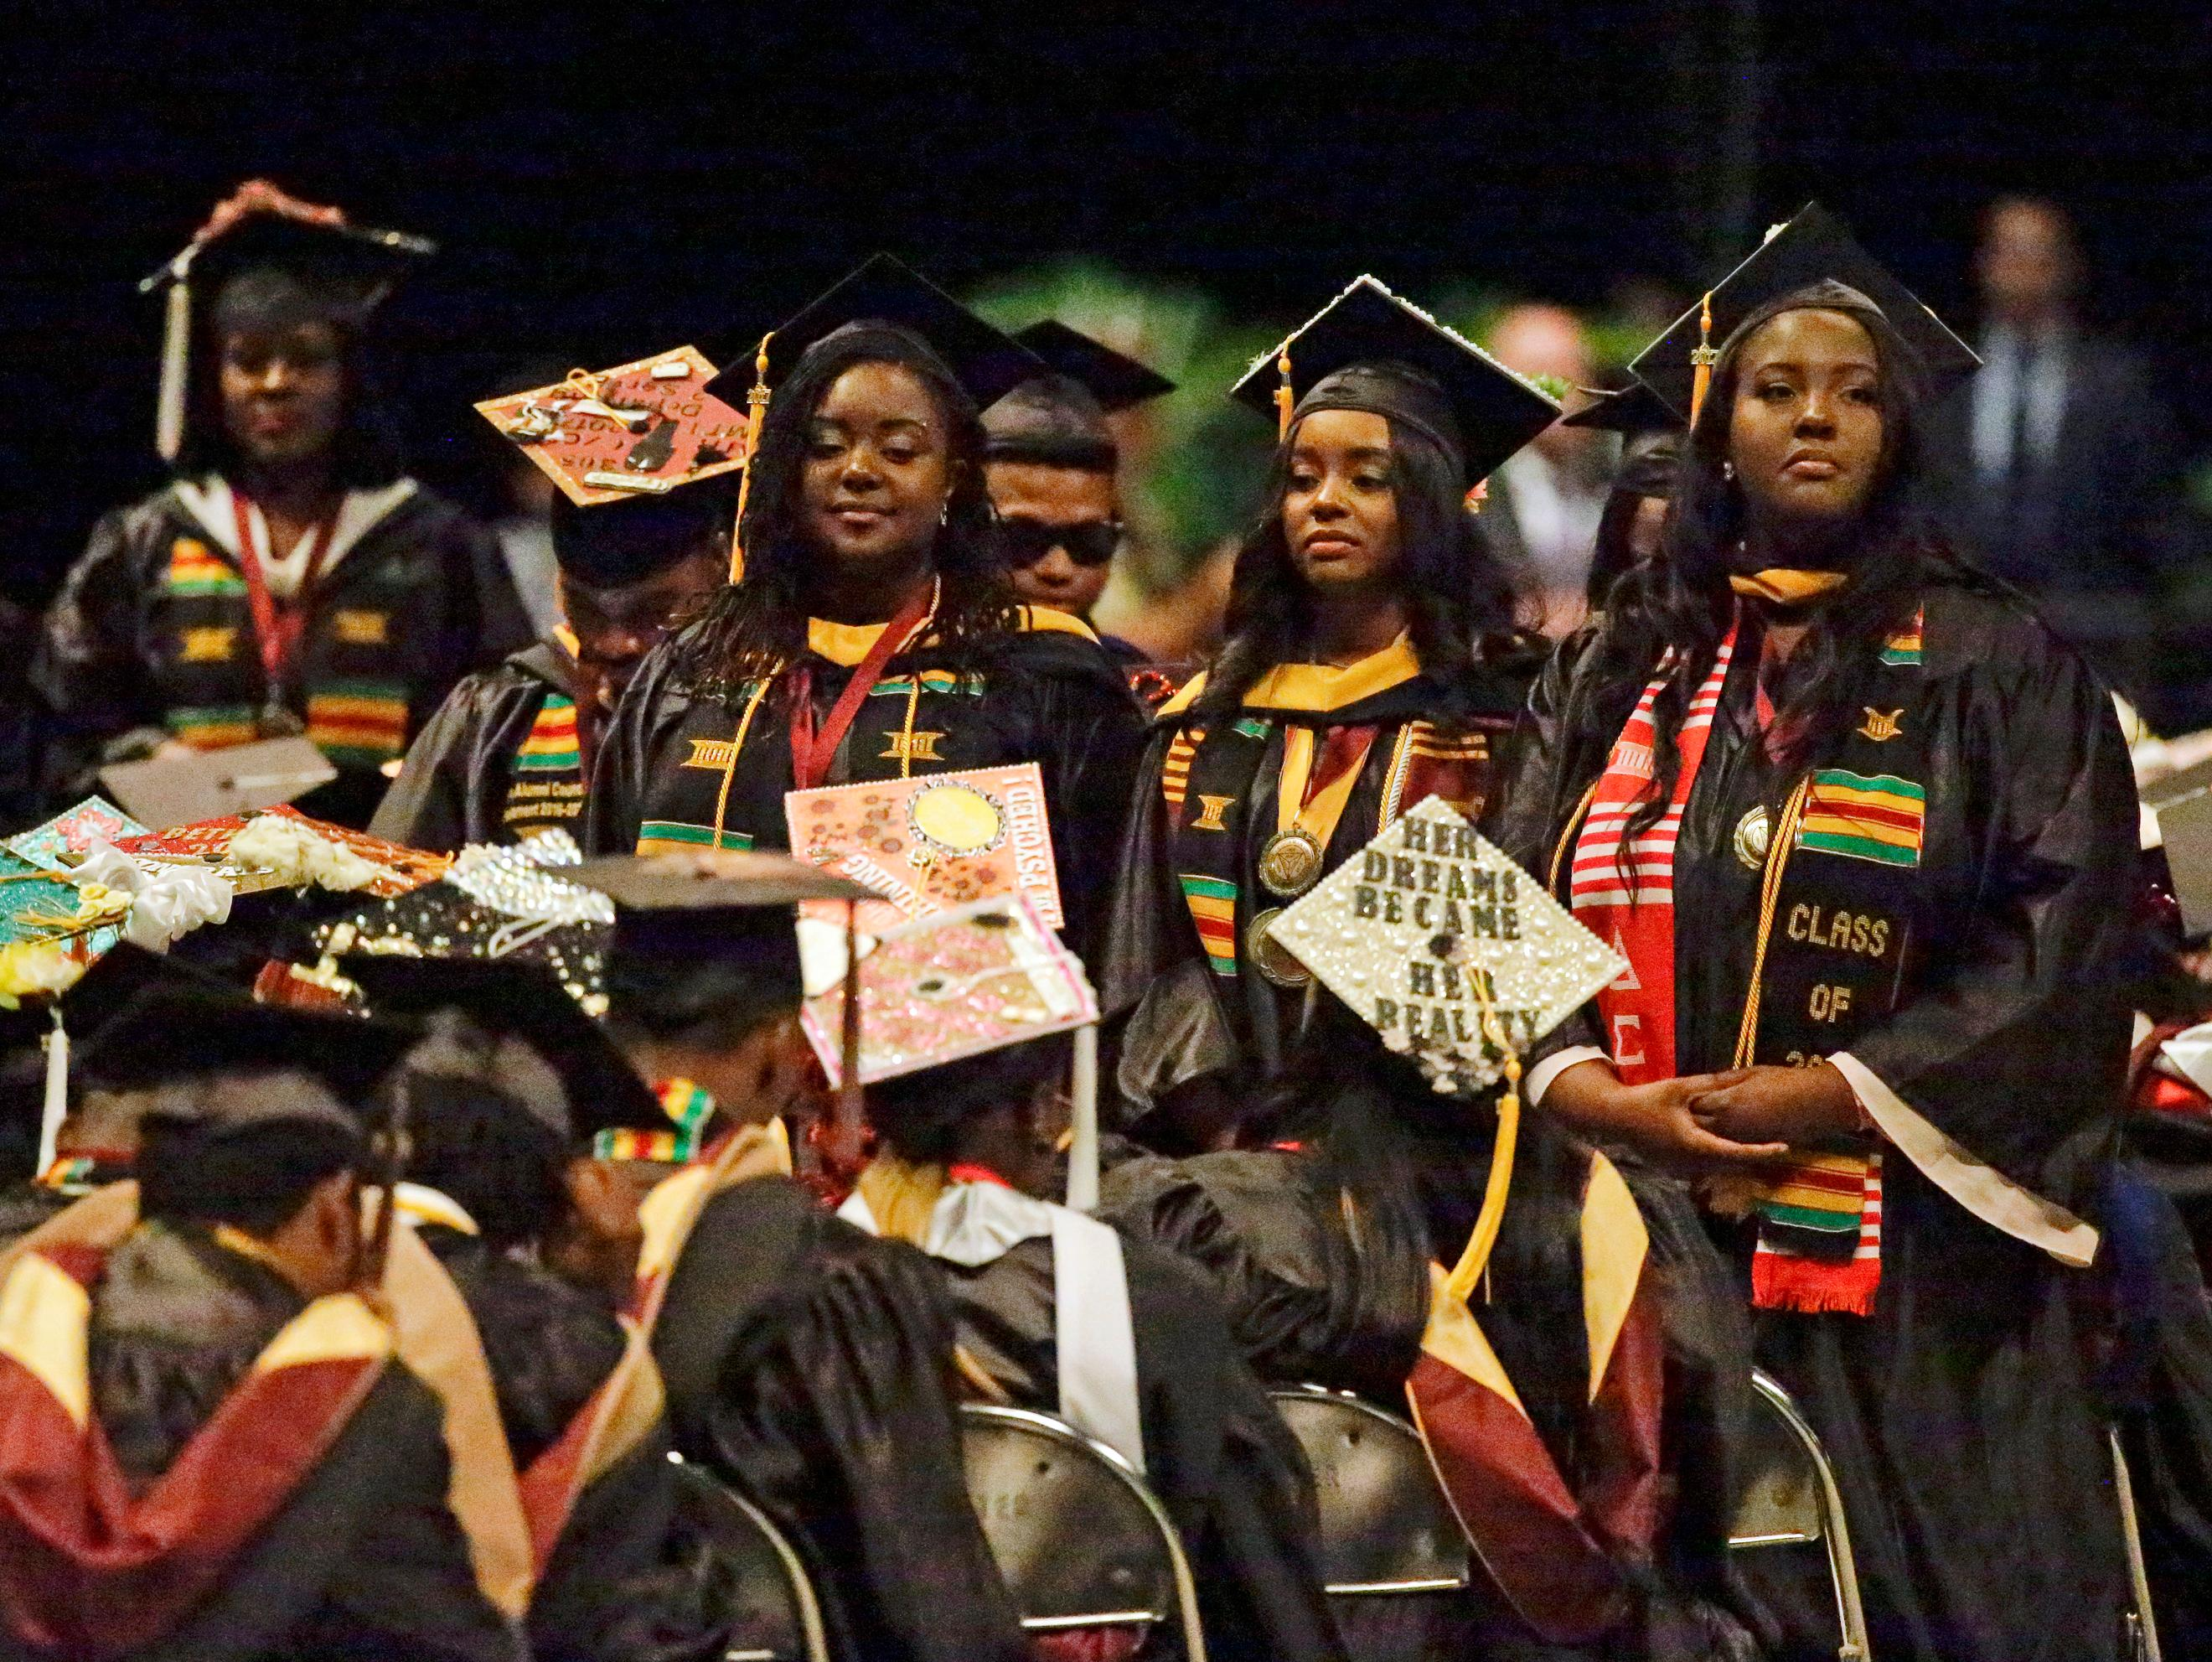 A group of students stand and turn their backs during a commencement exercise speech by Education Secretary Betsy DeVos at Bethune-Cookman University, Wednesday, May 10, 2017, in Daytona Beach, Fla. (AP Photo/John Raoux)